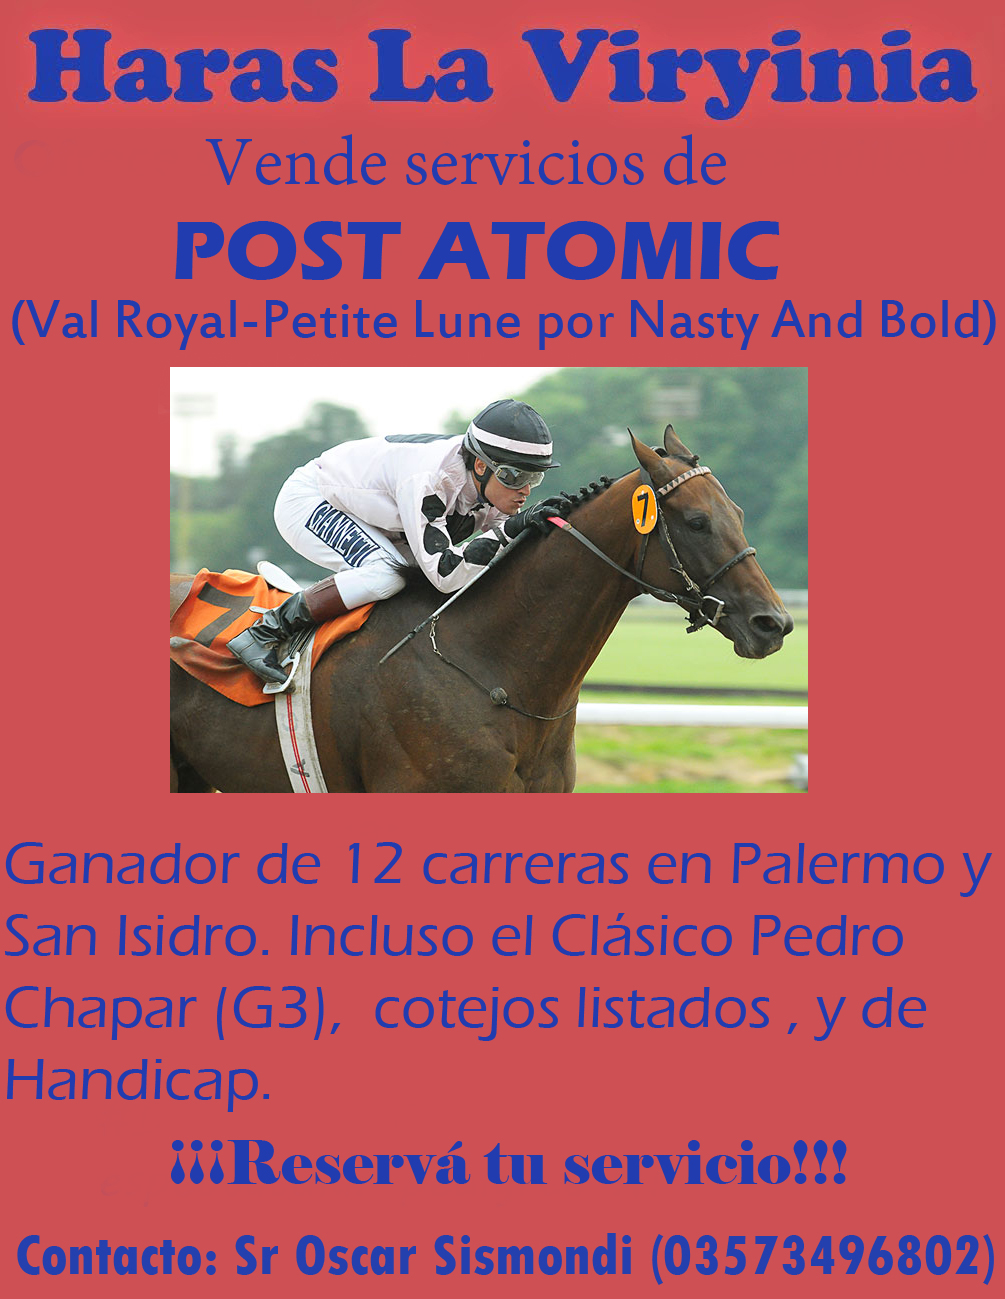 HS LA VIRYINIA POST ATOMIC